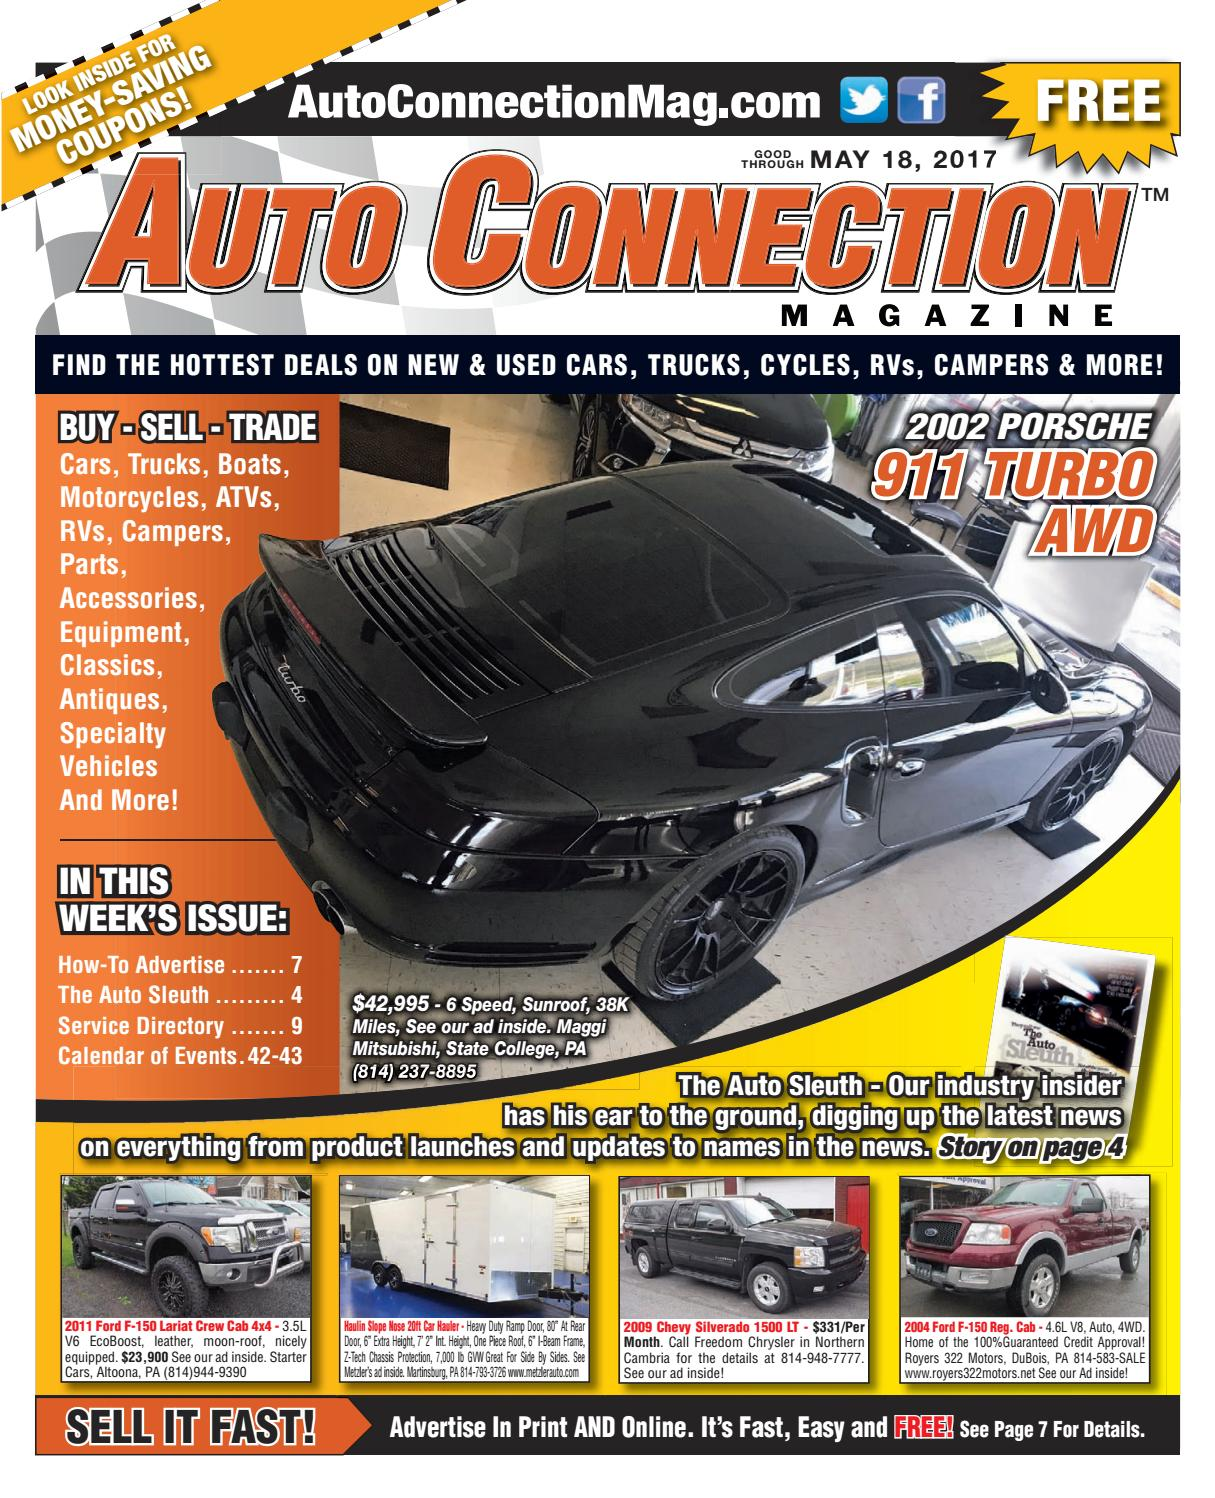 05-18-17 Auto Connection Magazine by Auto Connection Magazine - issuu